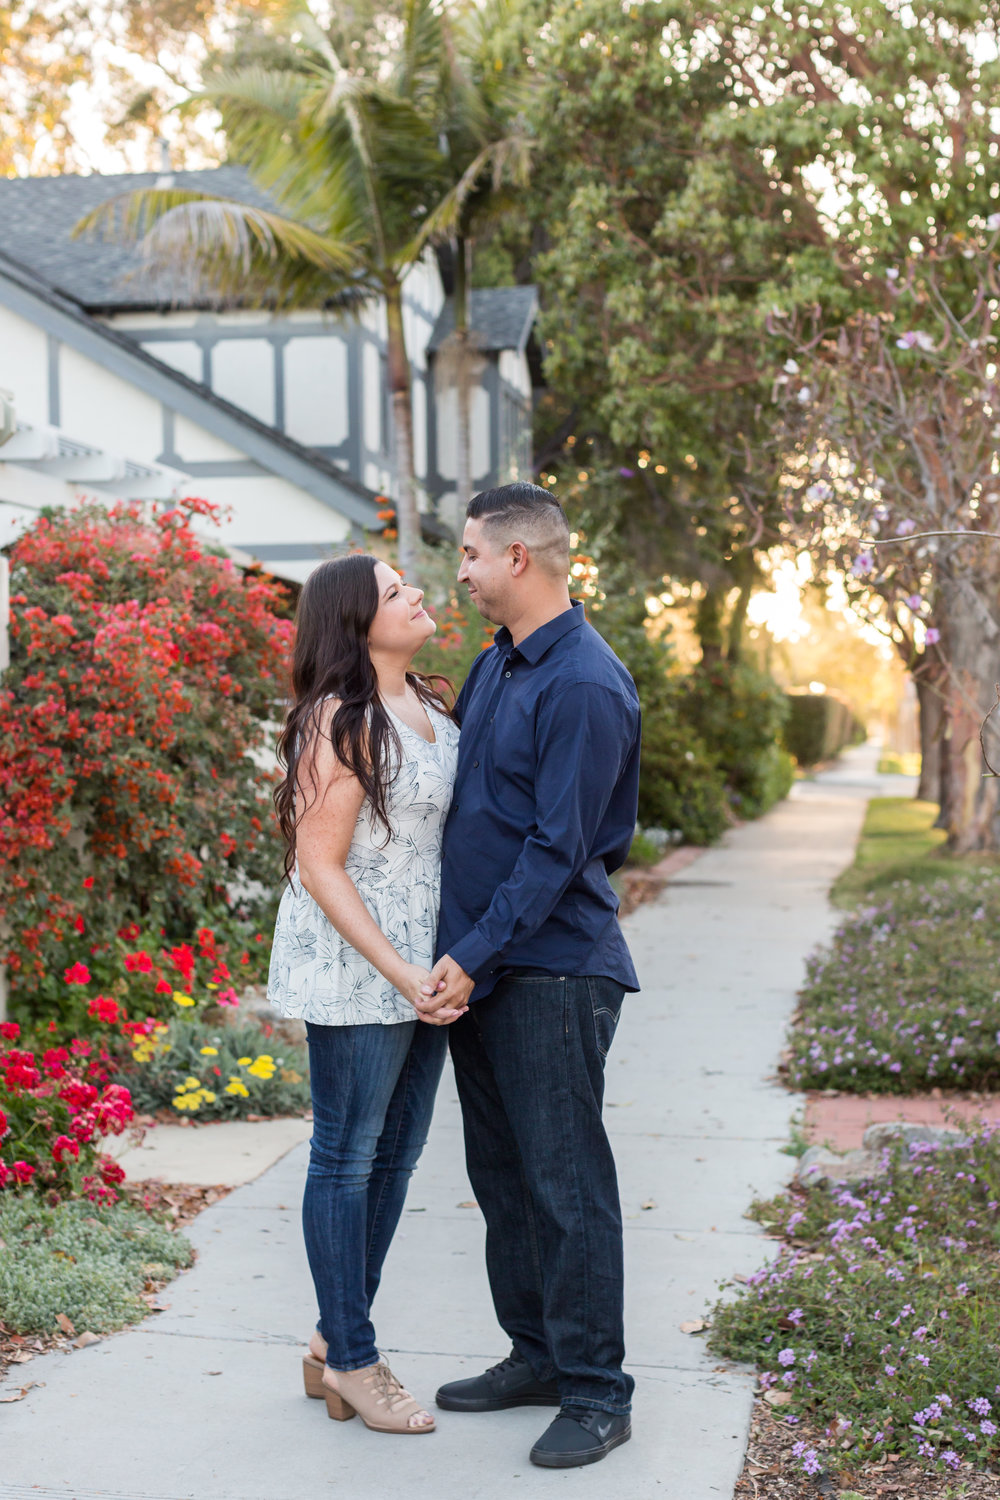 035-170520-rachel-joe-engagement-©LoveProject.jpg